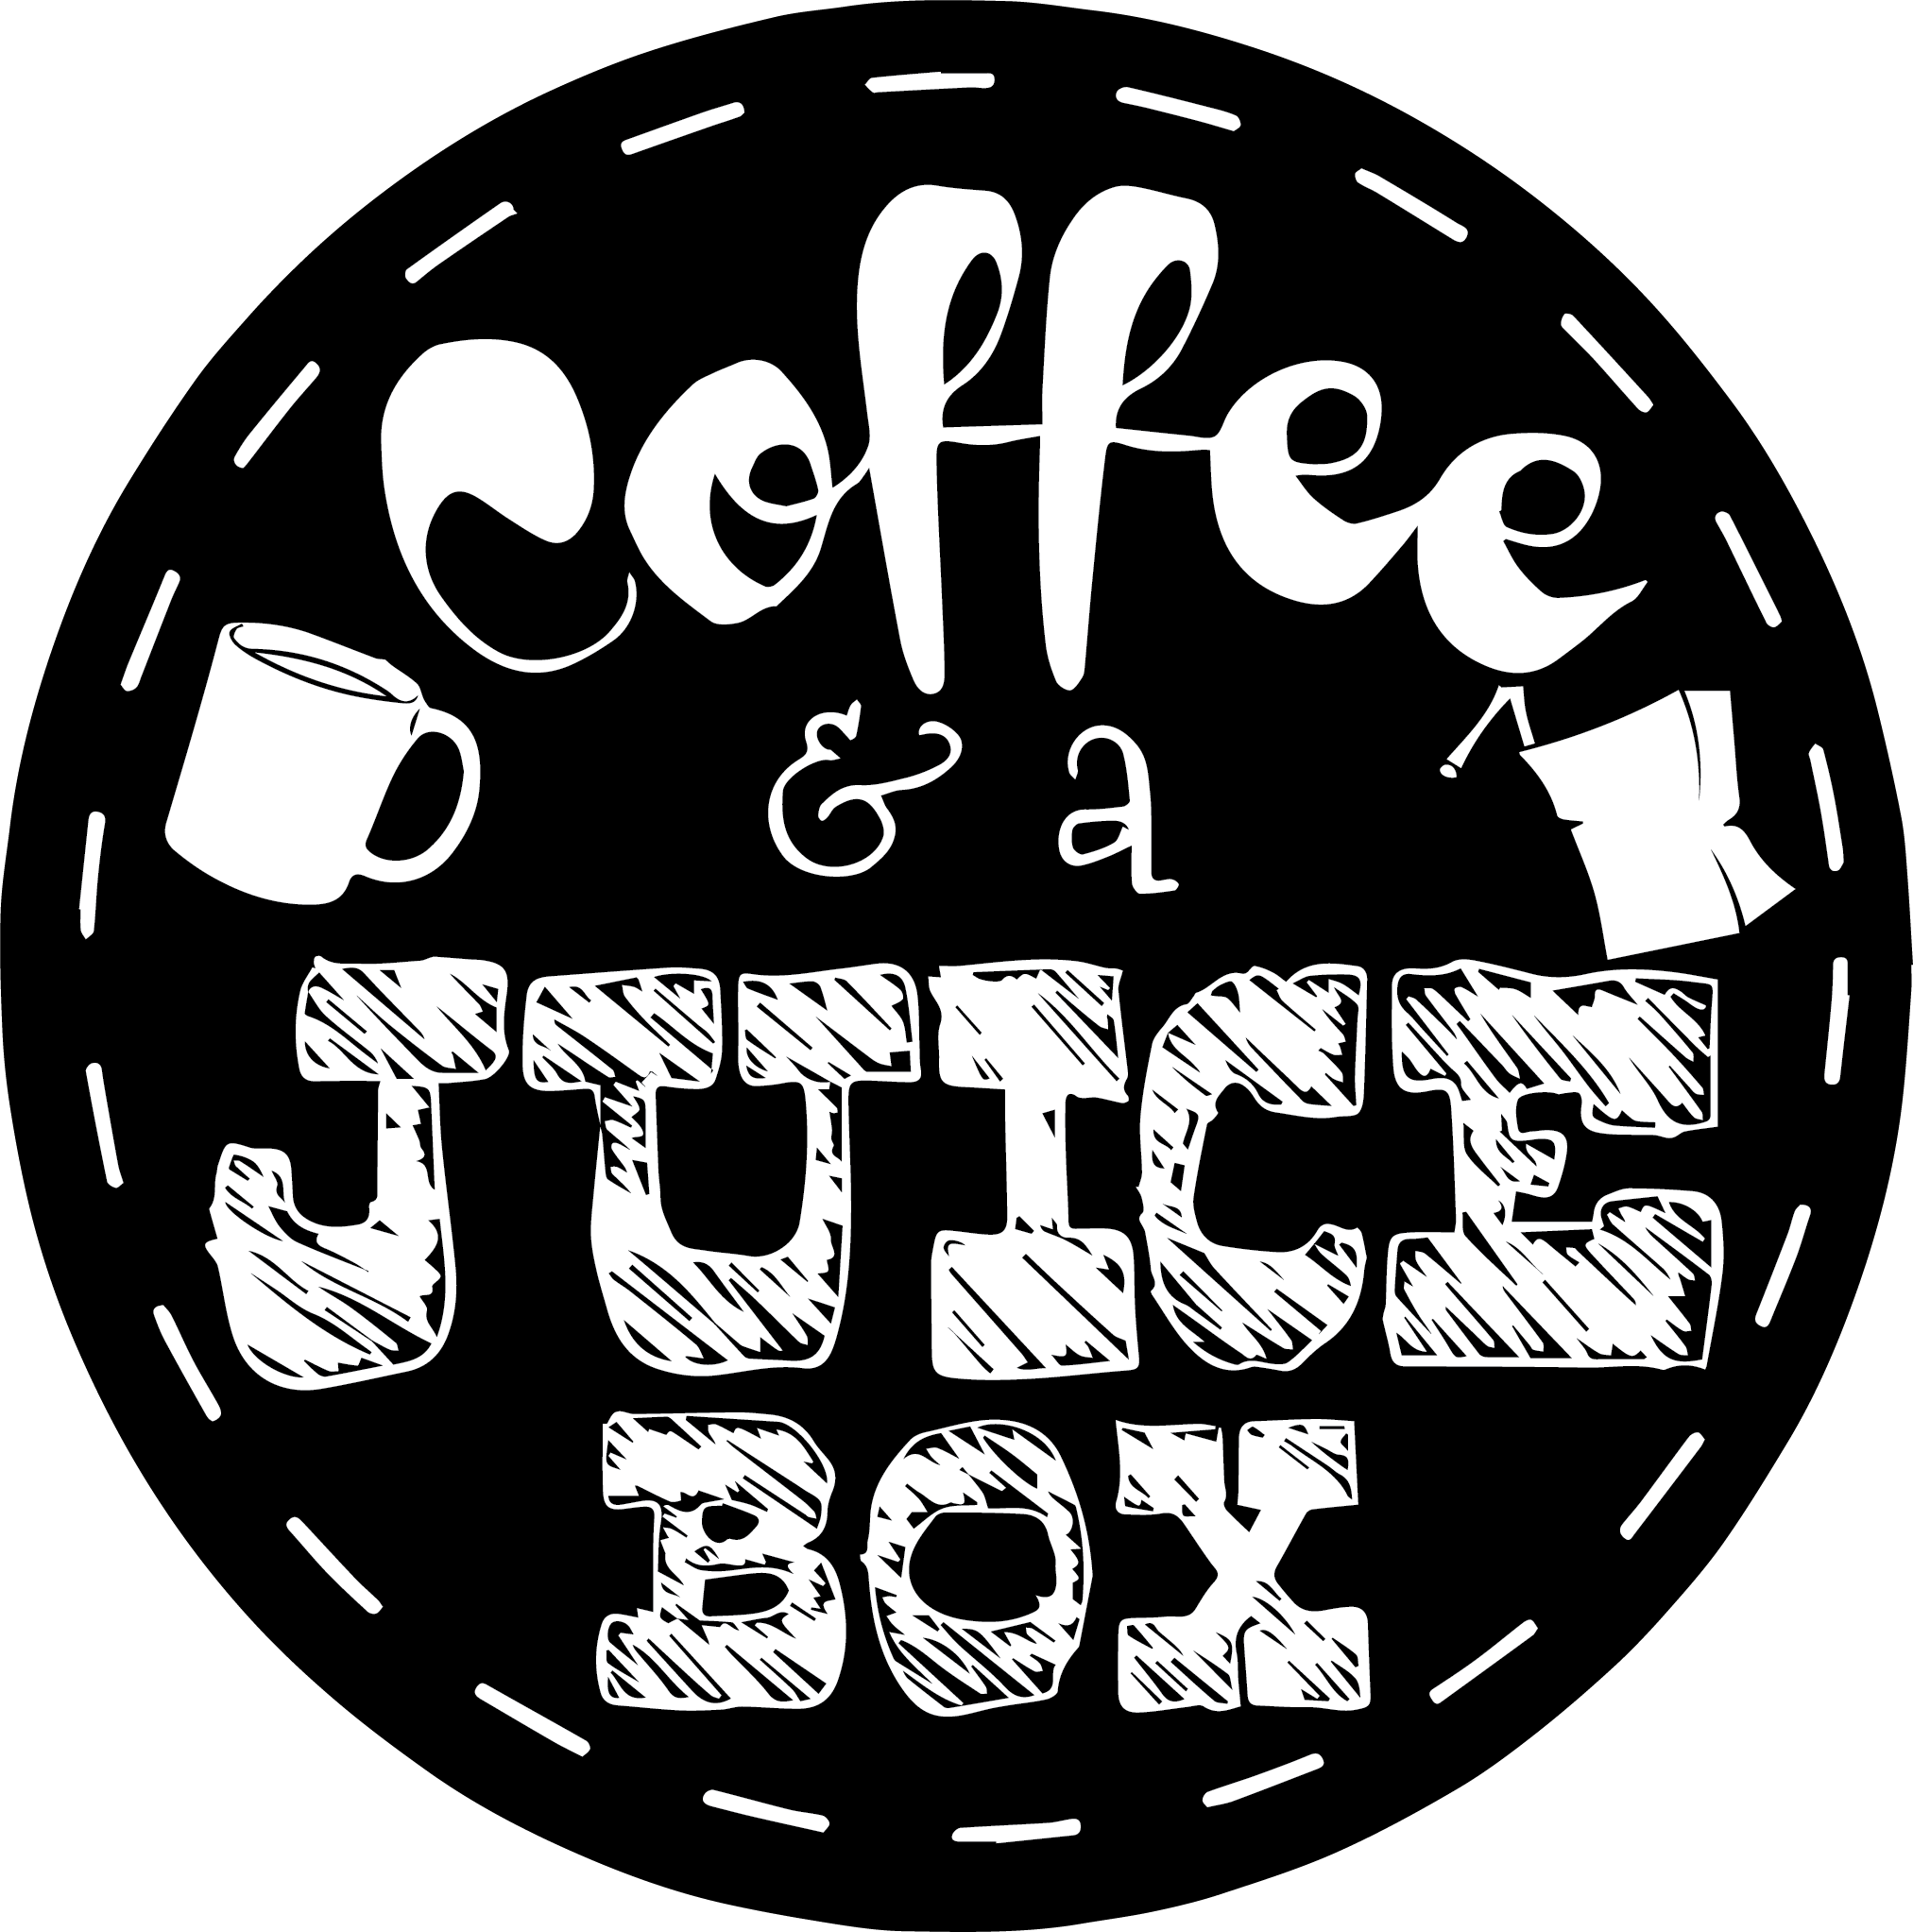 Coffee & a Juice Box